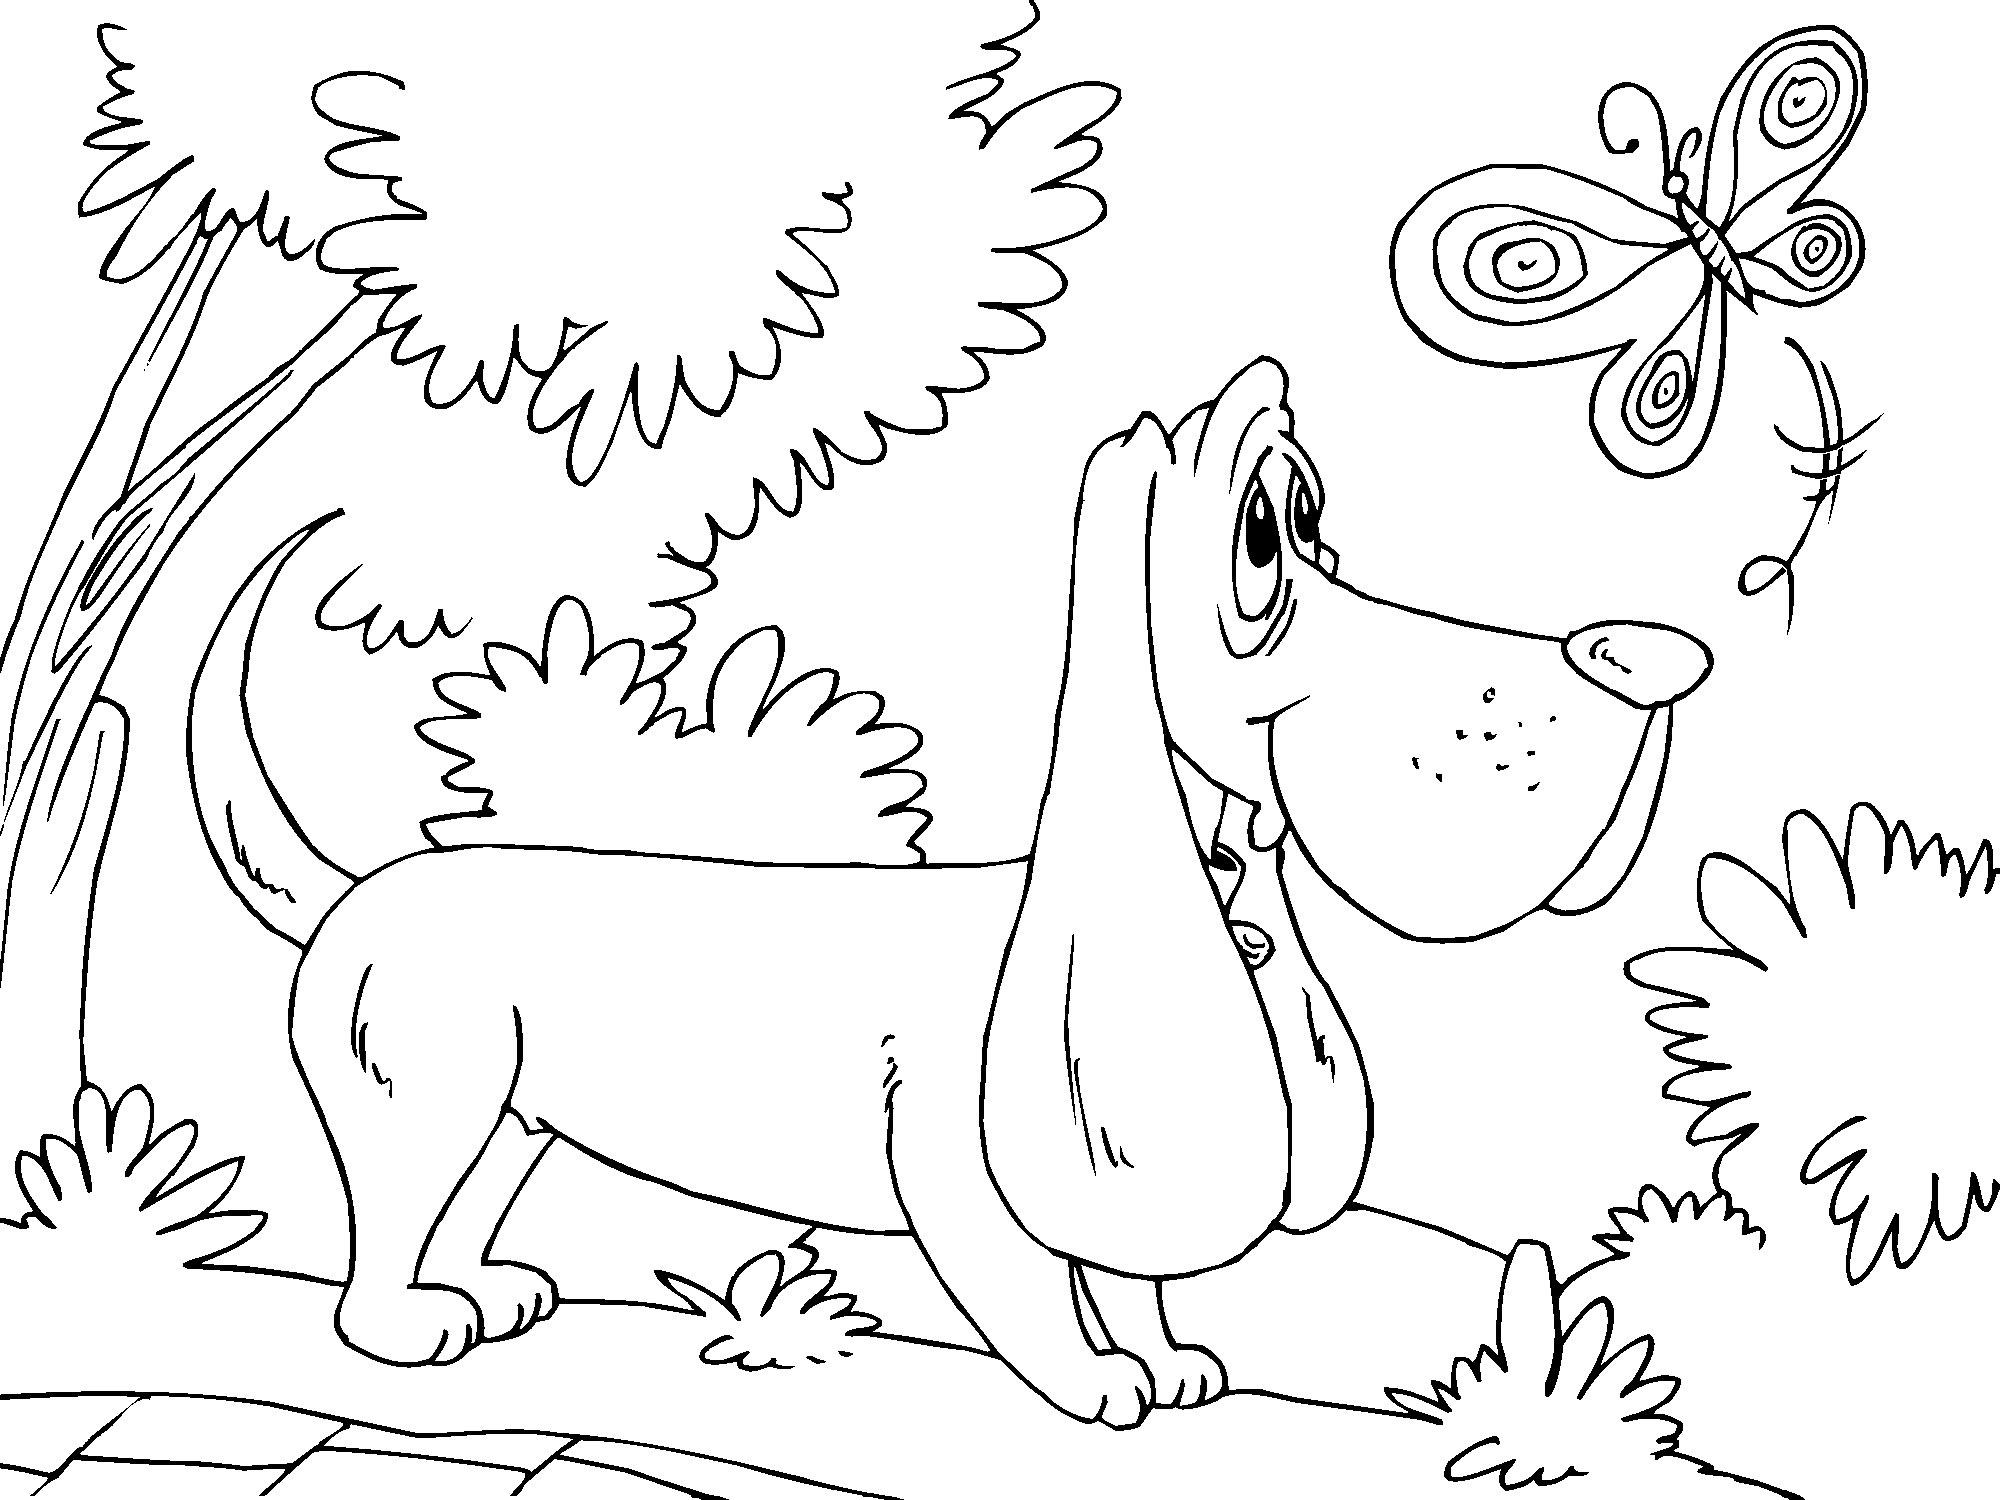 Dog coloring page to download for free